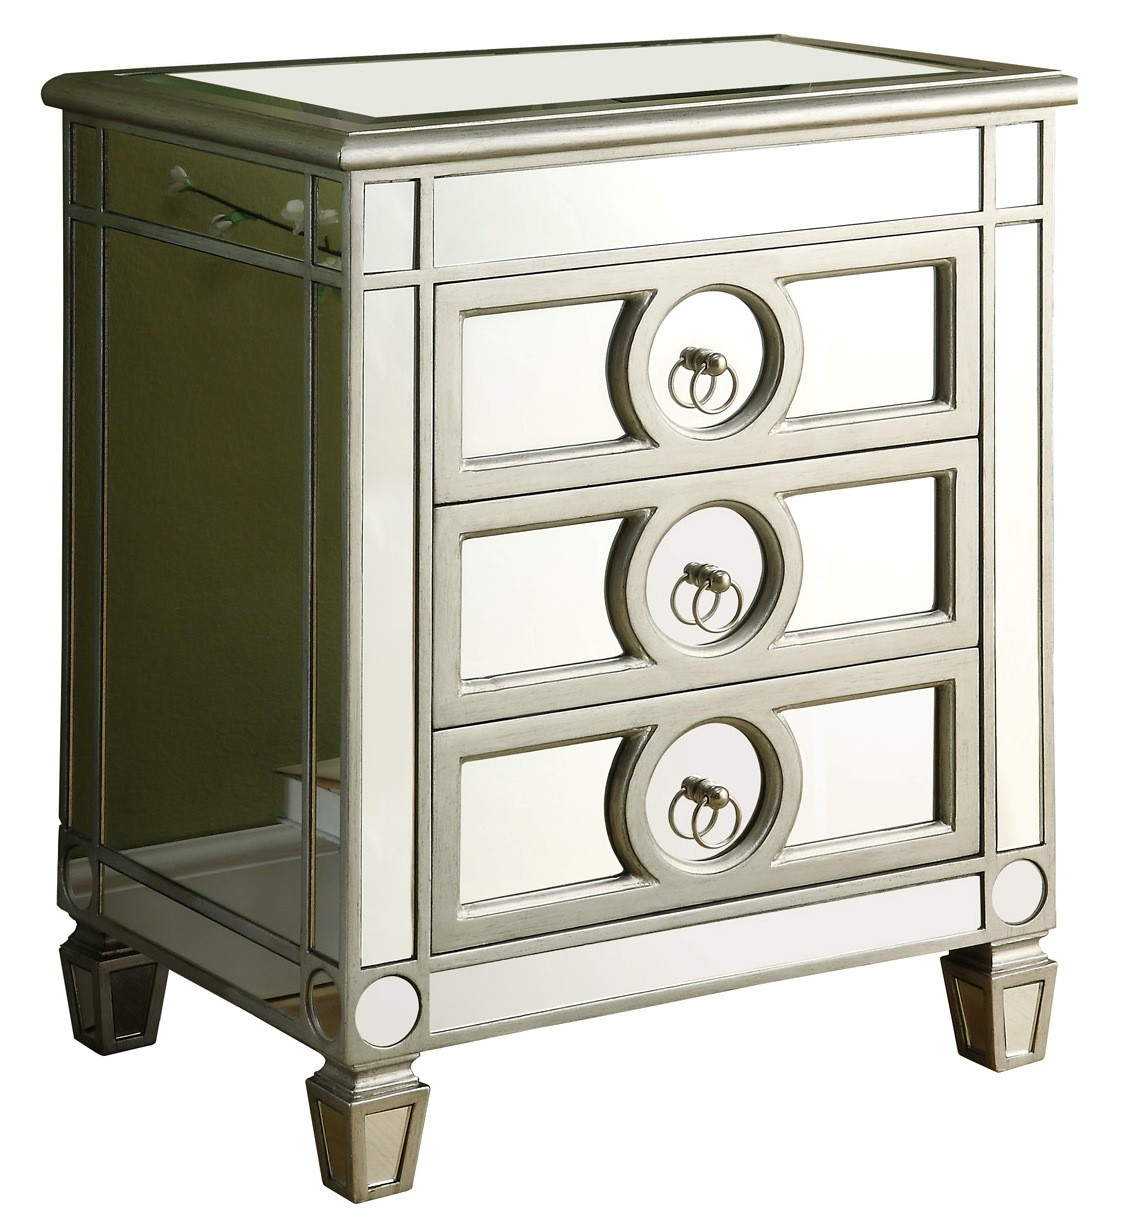 Mirrored Accent Table: 3701 Brushed Silver / Mirrored 3 Drawer Accent Table From